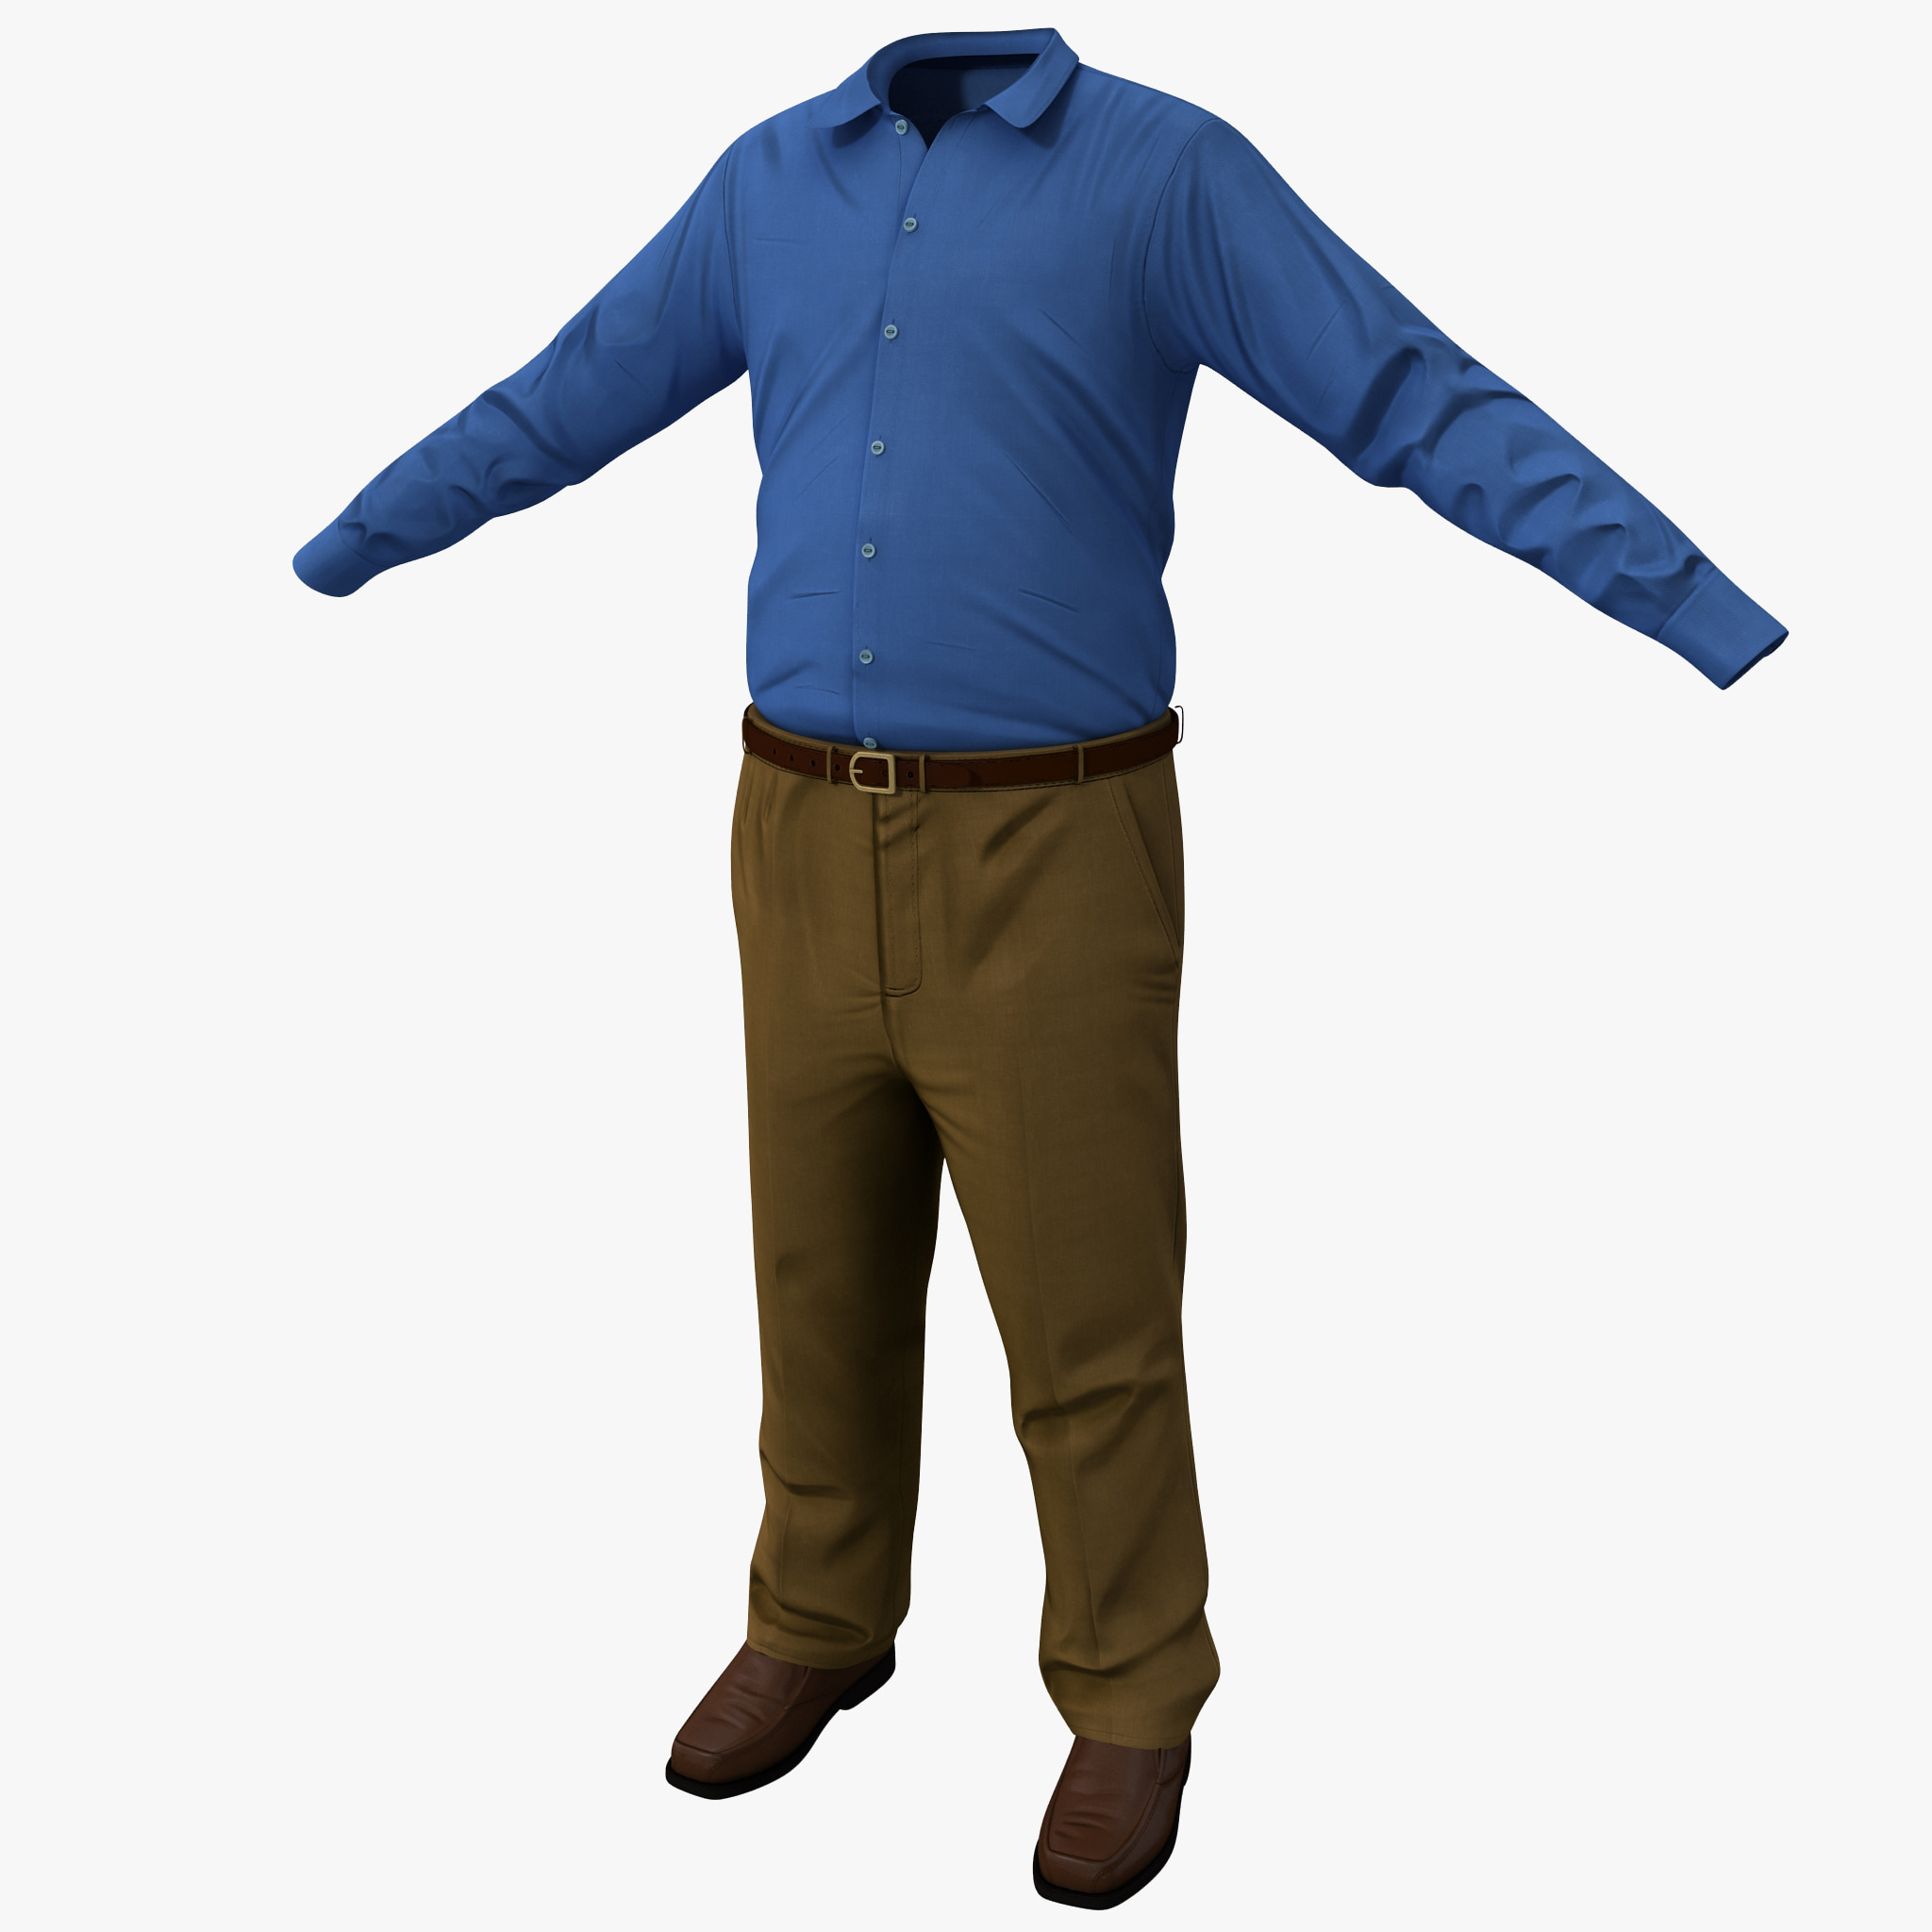 3ds max male casual clothes 8